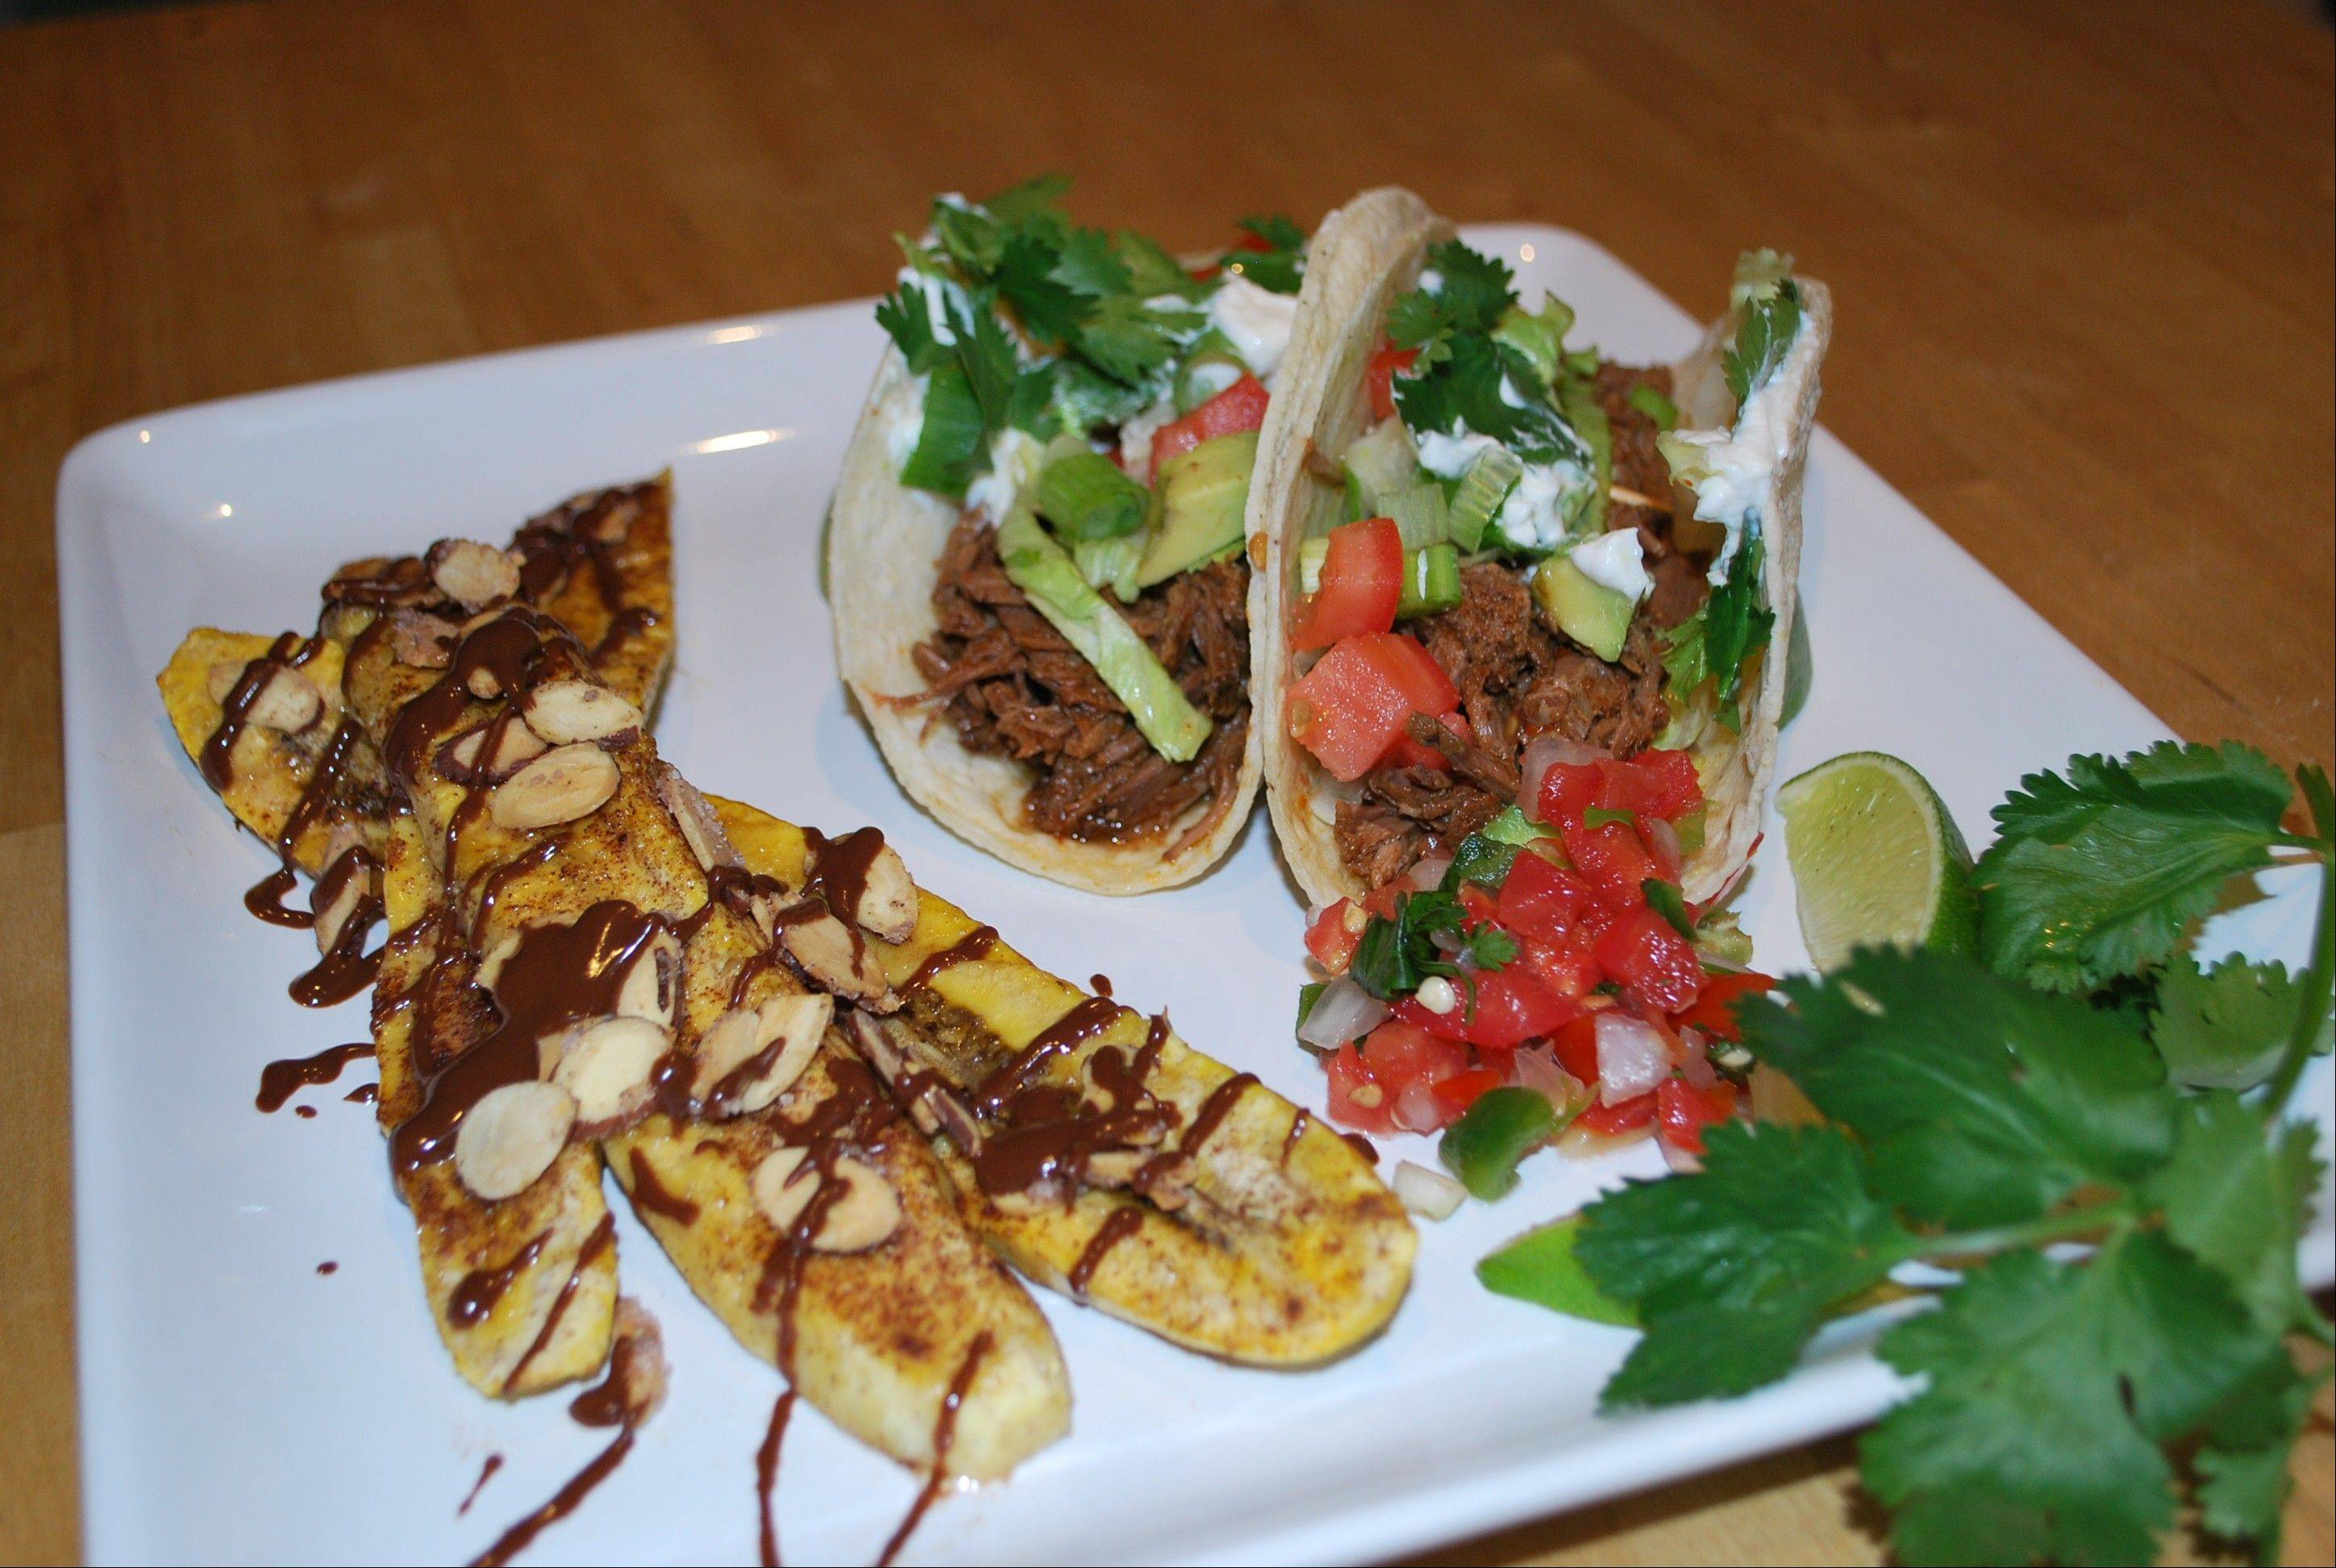 Shredded Beef Tacos and Chocolate Sauce Plantains